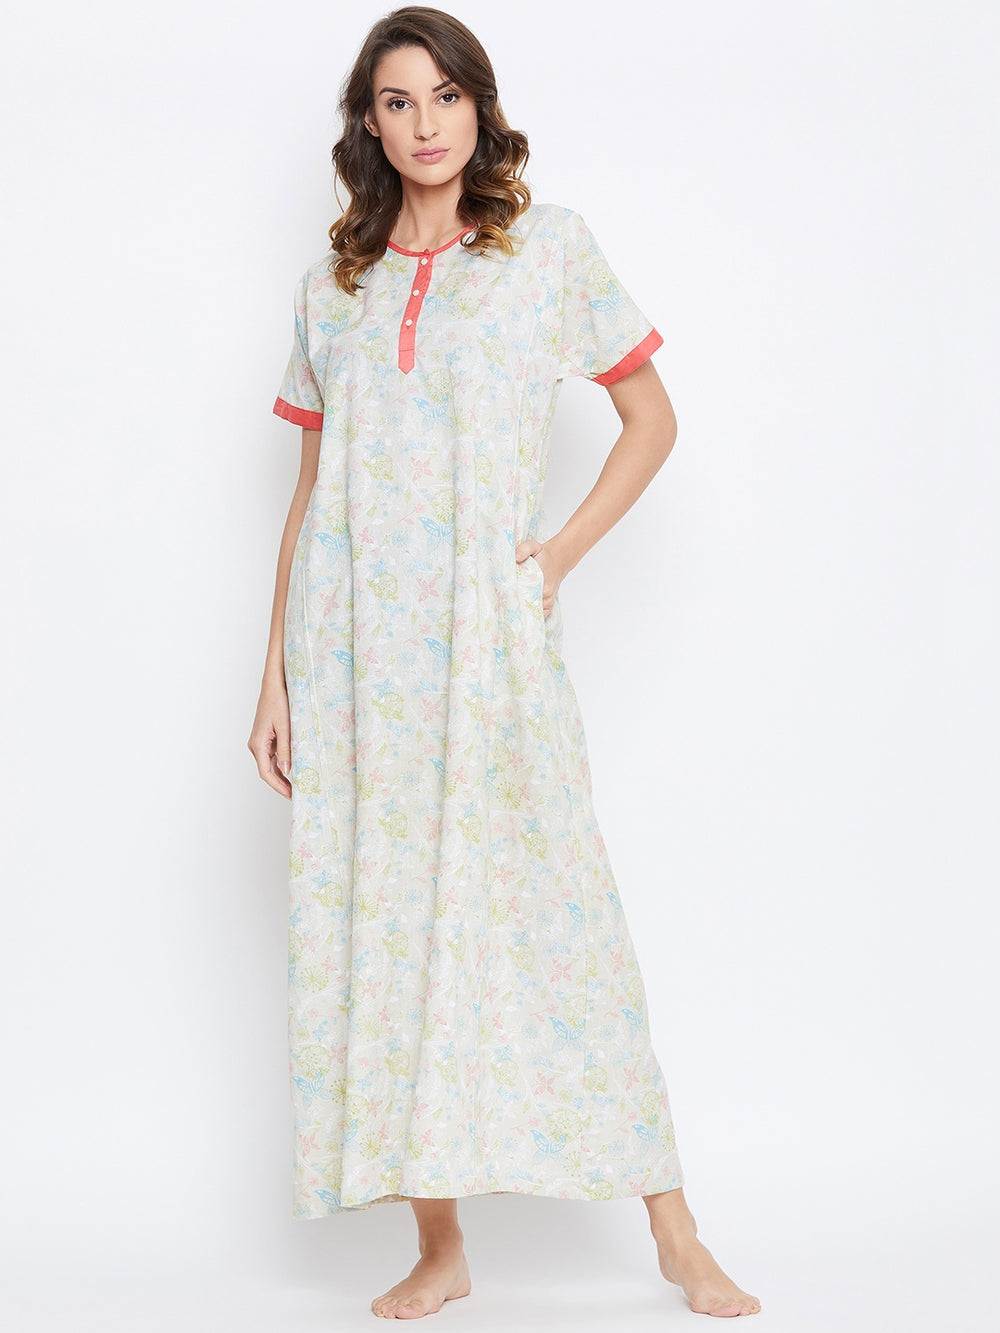 PRETTY BLOOMS COTTON NIGHTDRESS